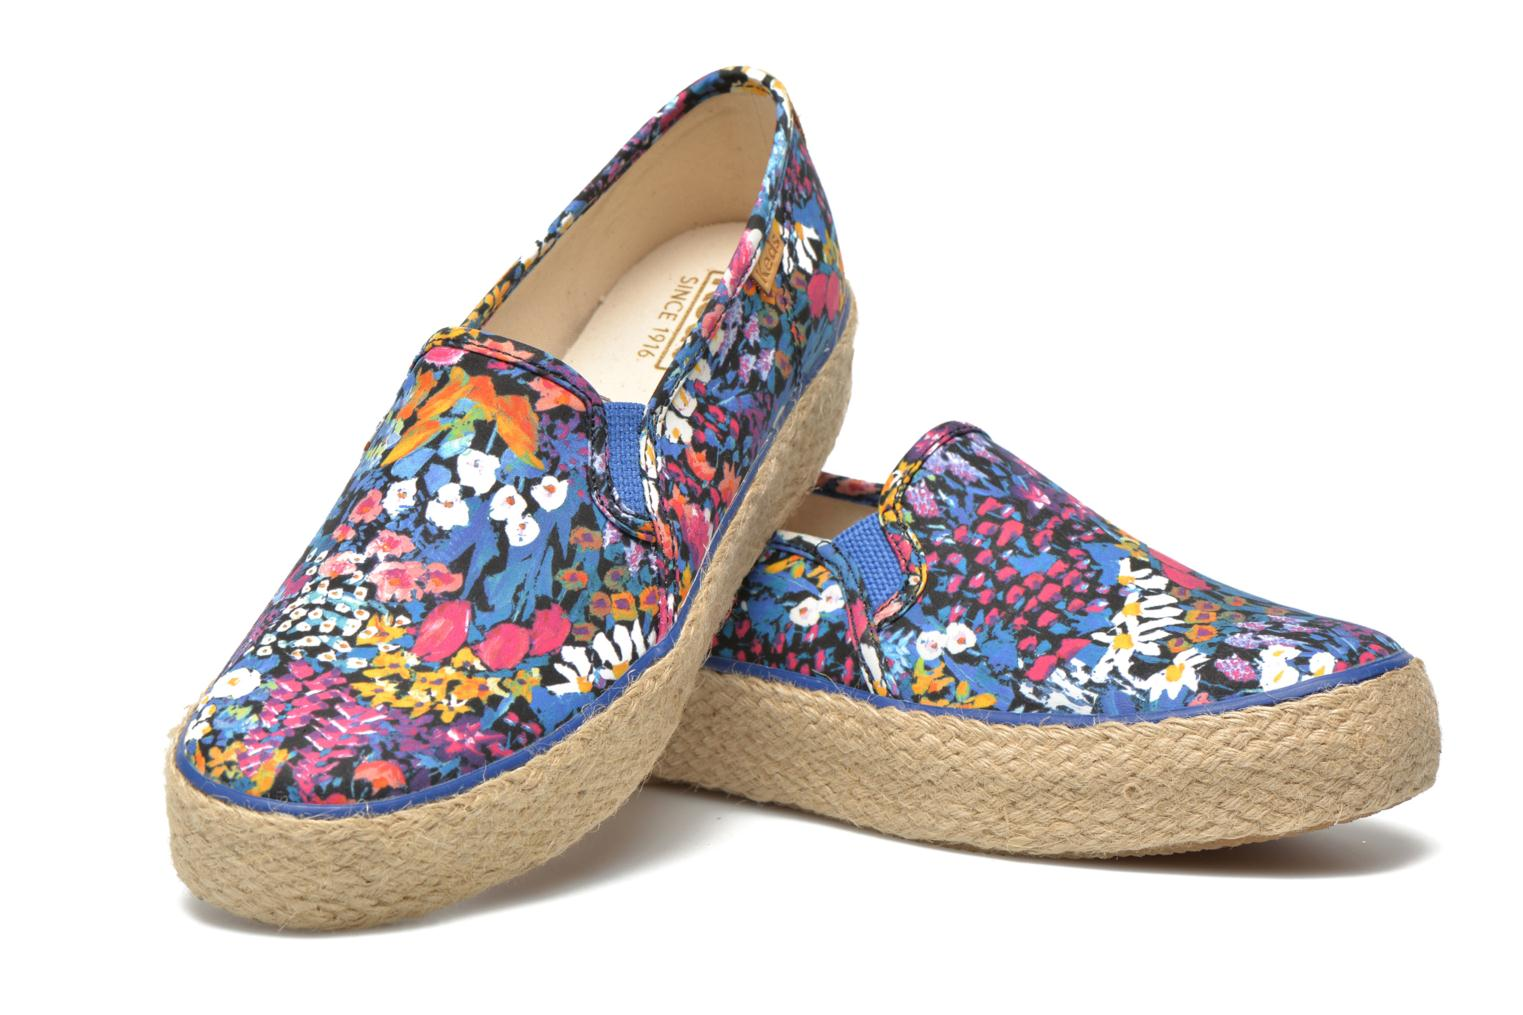 Sneakers Keds Triple Decker Liberty Floral Multi 3/4 bild